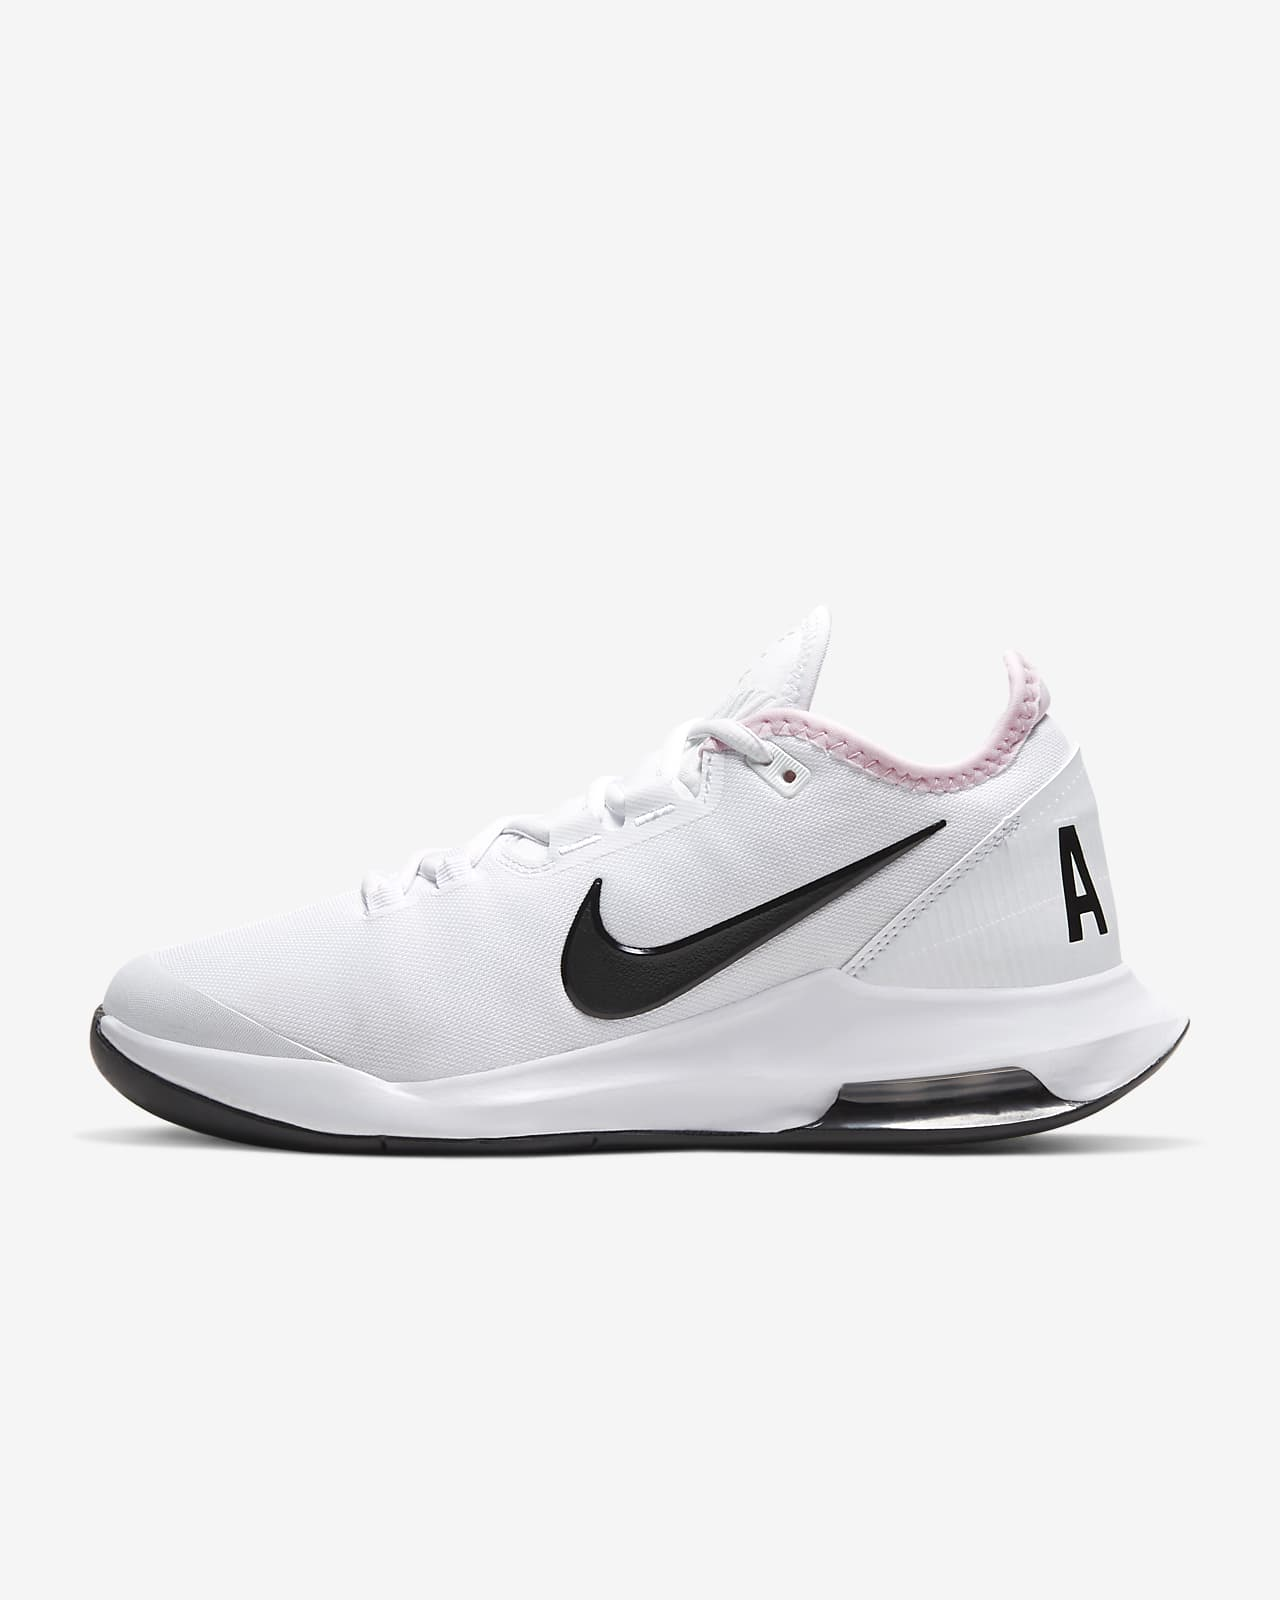 NikeCourt Air Max Wildcard Women's Tennis Shoe